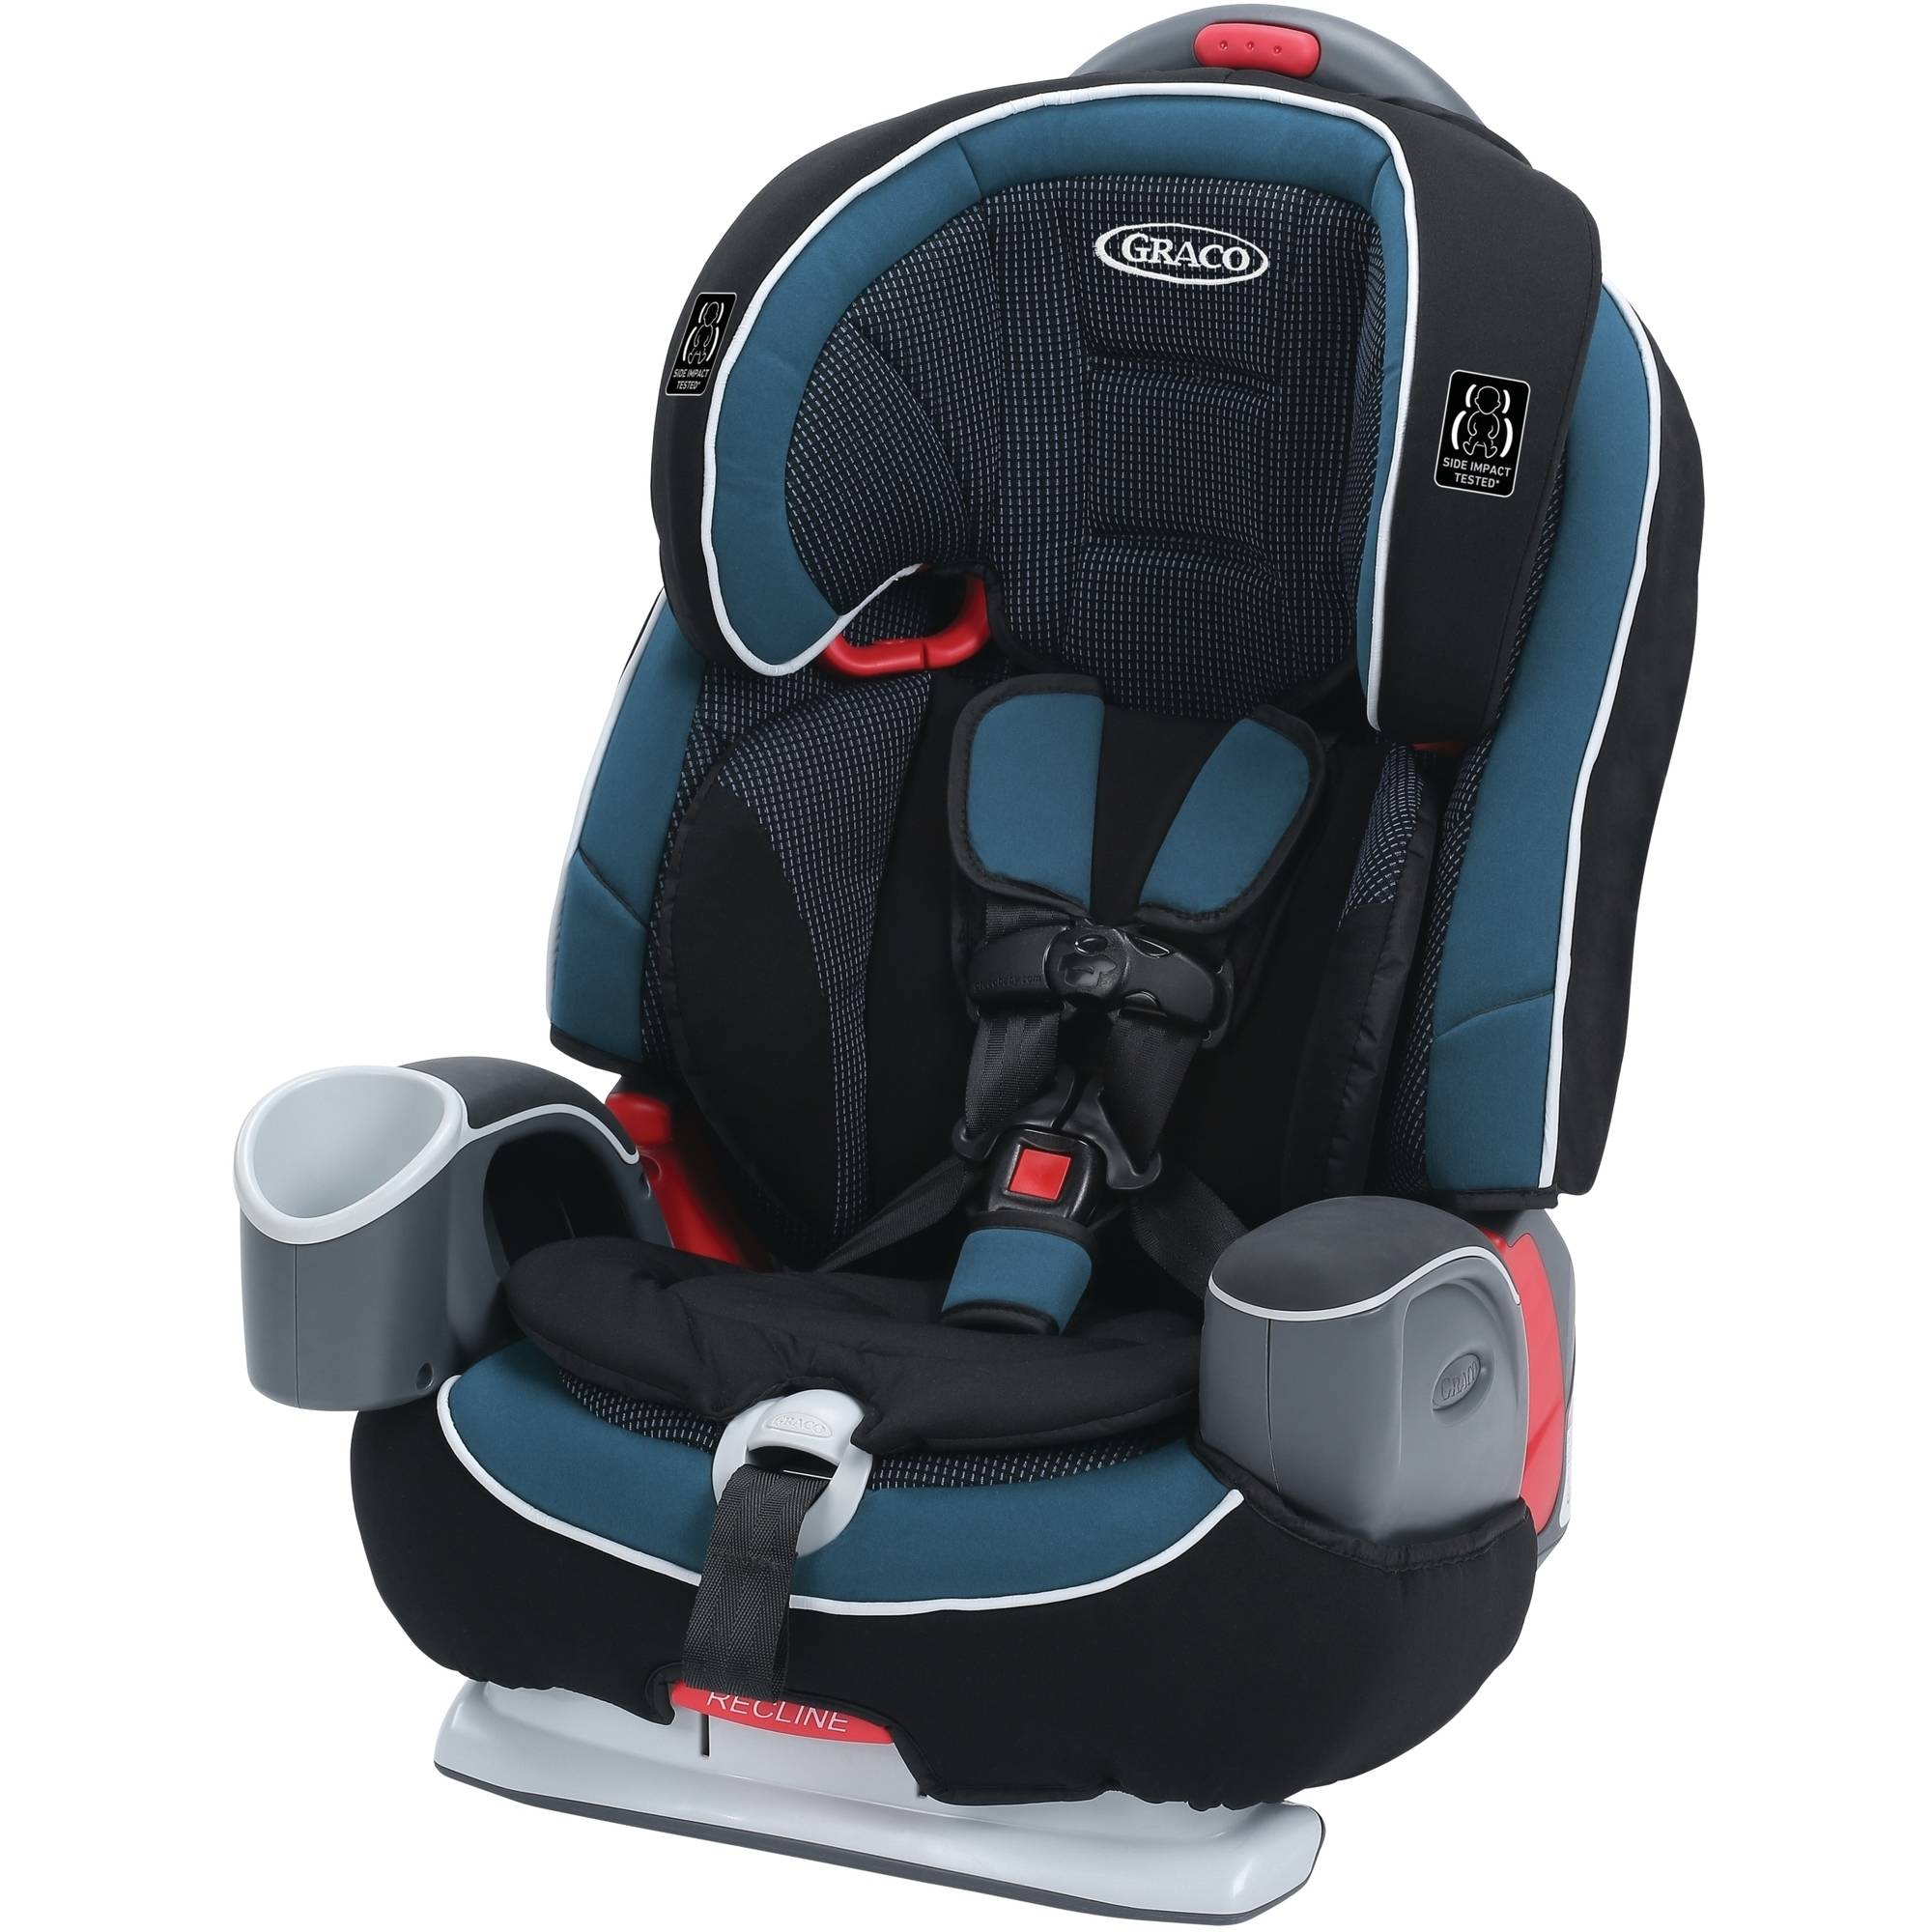 Graco Nautilus 65 LX 3-in-1 Convertible Harness Booster Car Seat, Zell